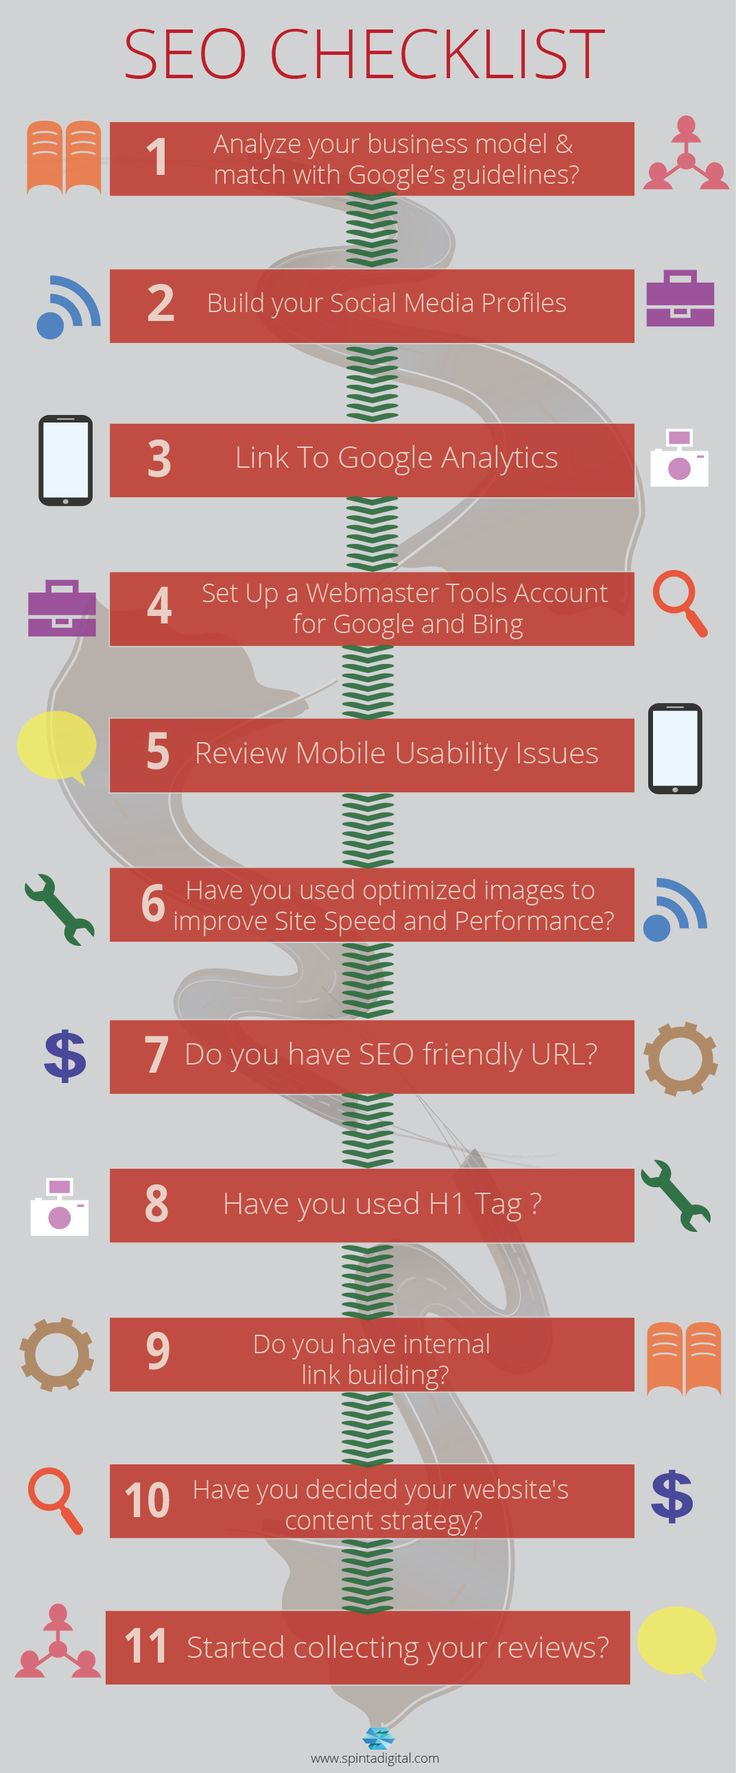 Top 11 SEO Checklist For Your Brand